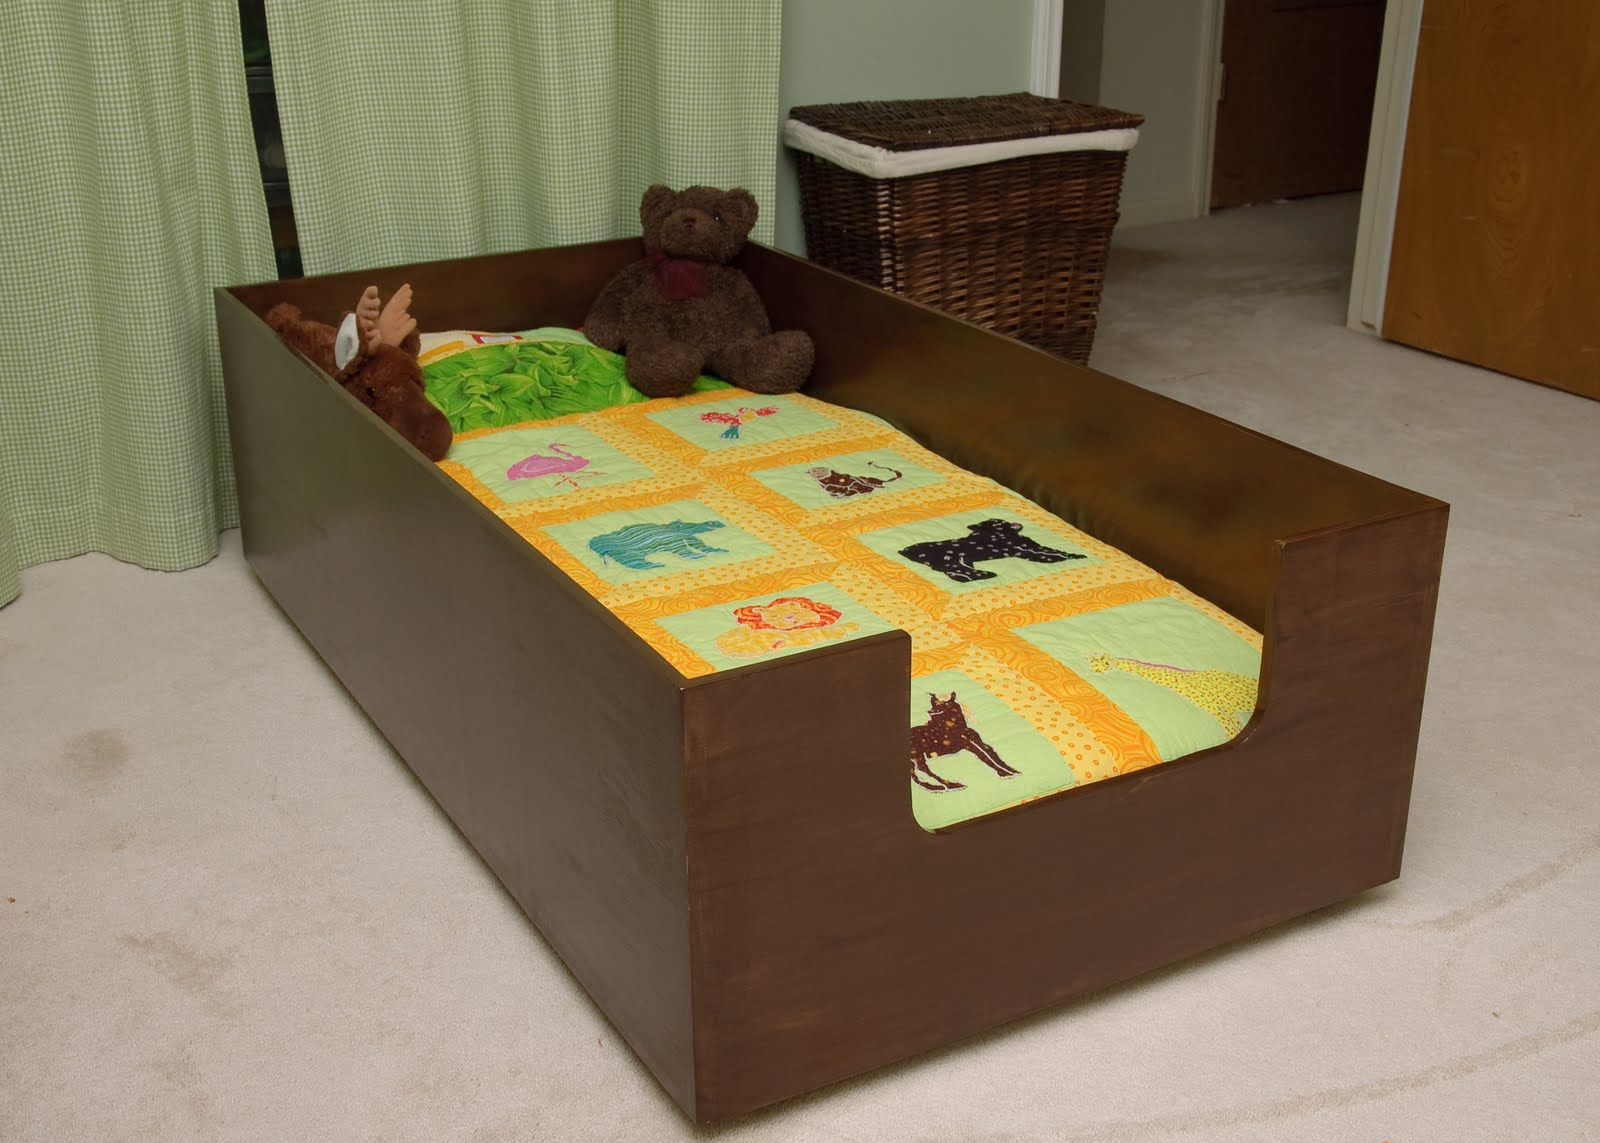 Lilybug Designs Toddler Bed